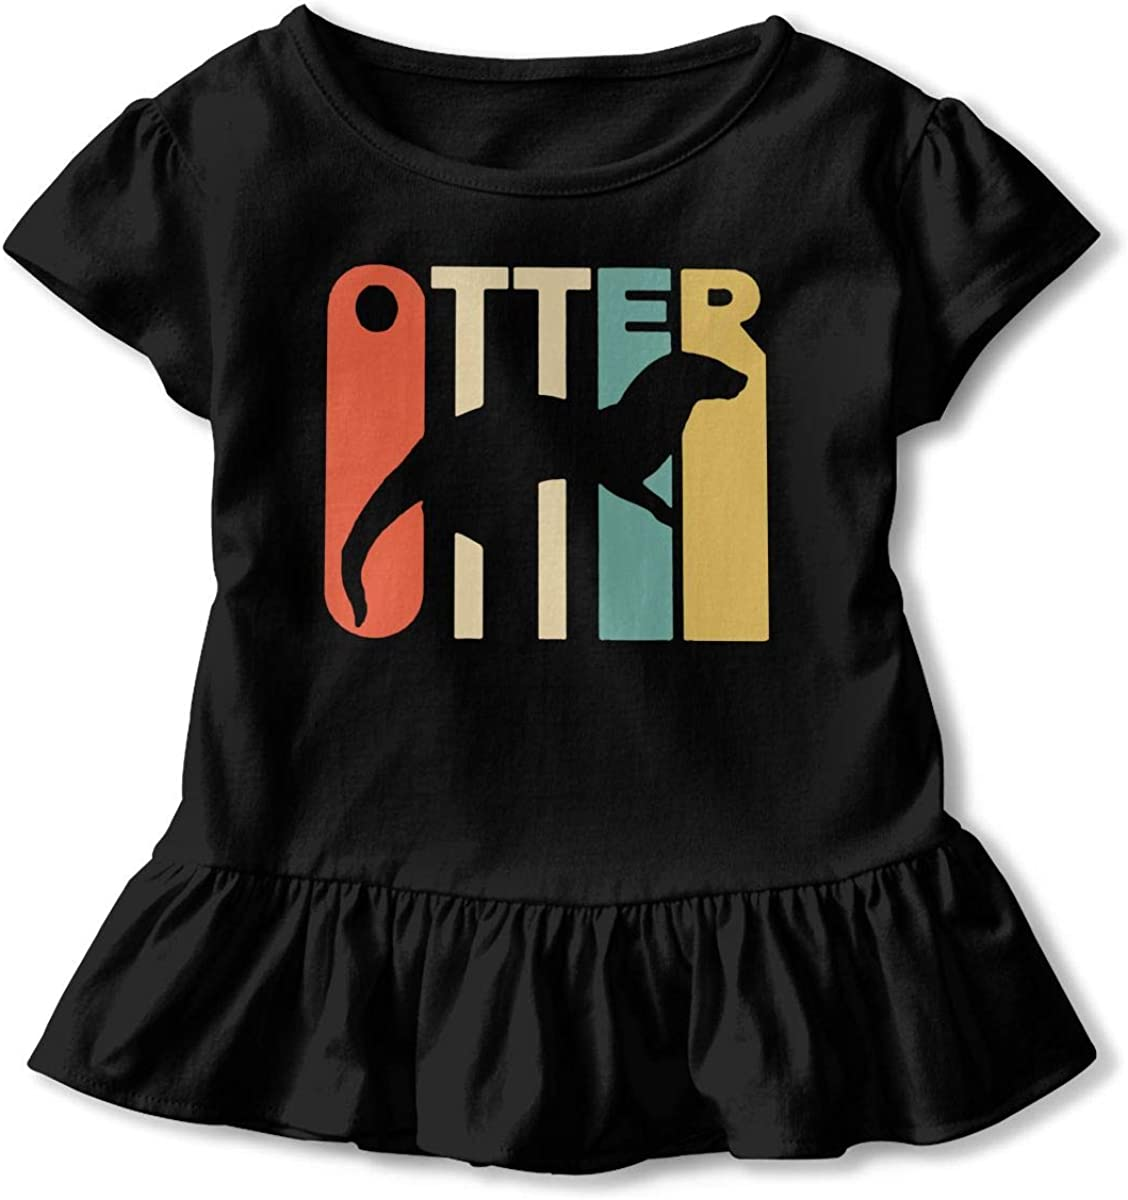 2-6T Zi7J9q-0 Short-Sleeve Style Otter Shirts for Children Cute Blouse Clothes with Falbala